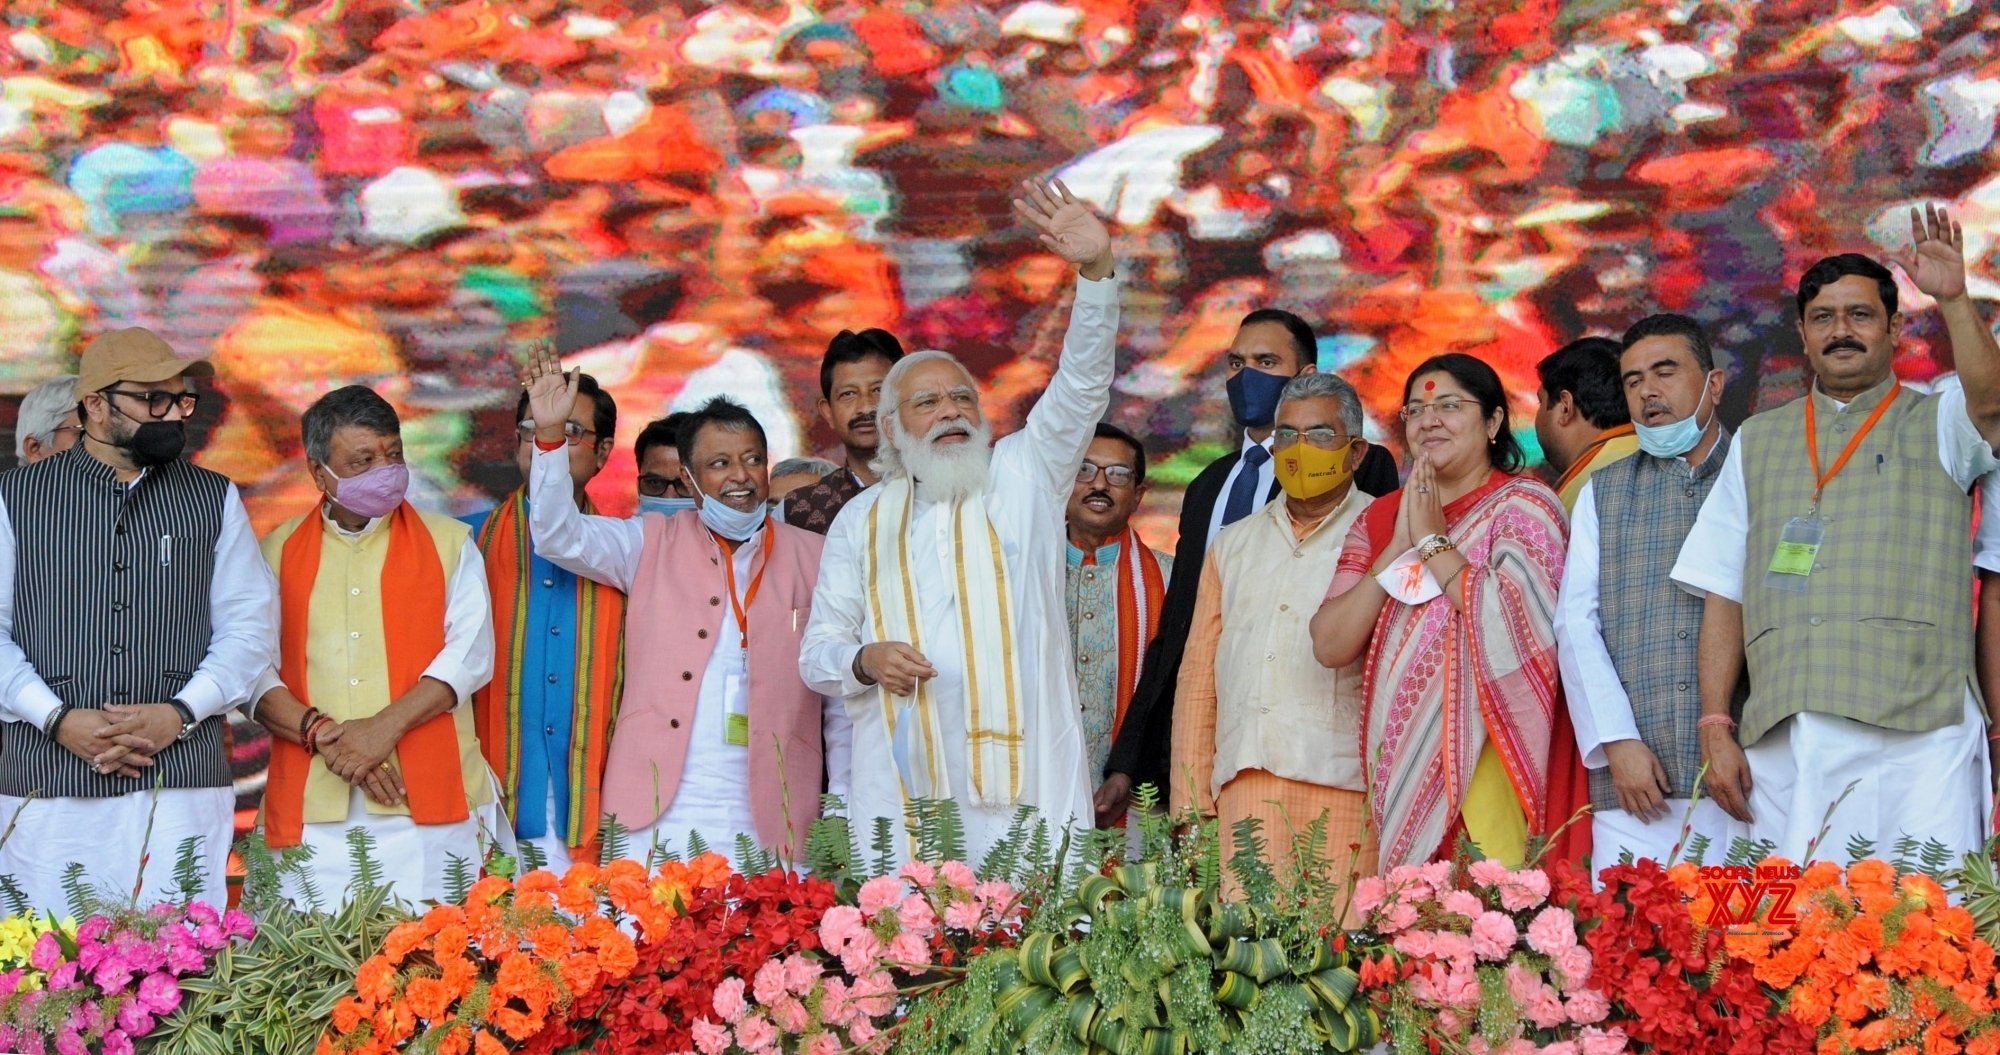 West Bengal: PM Narendra Modi during a public meeting ahead of State Assembly Election at Hooghly district in West Bengal on Monday 22nd February 2021 #Gallery